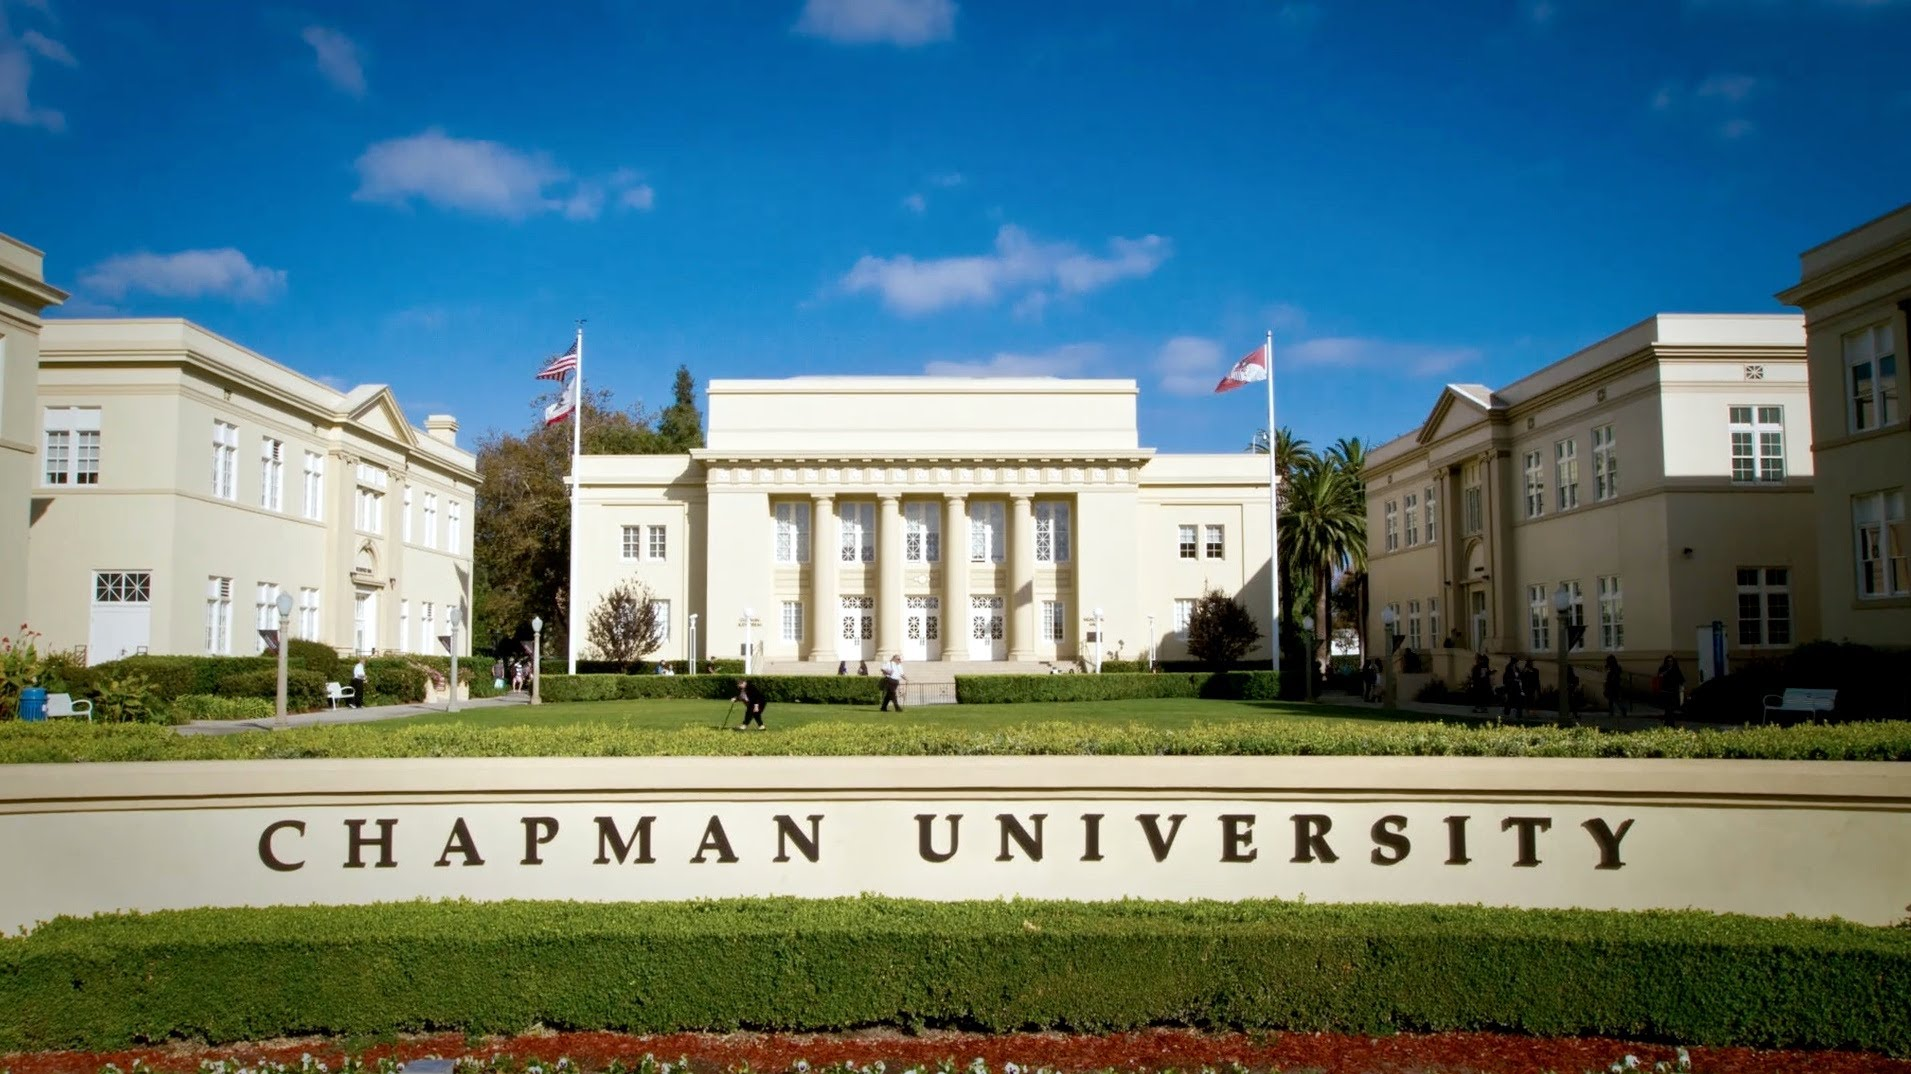 Exterior shot of Memorial hall with the Chapman University sign in the foreground.